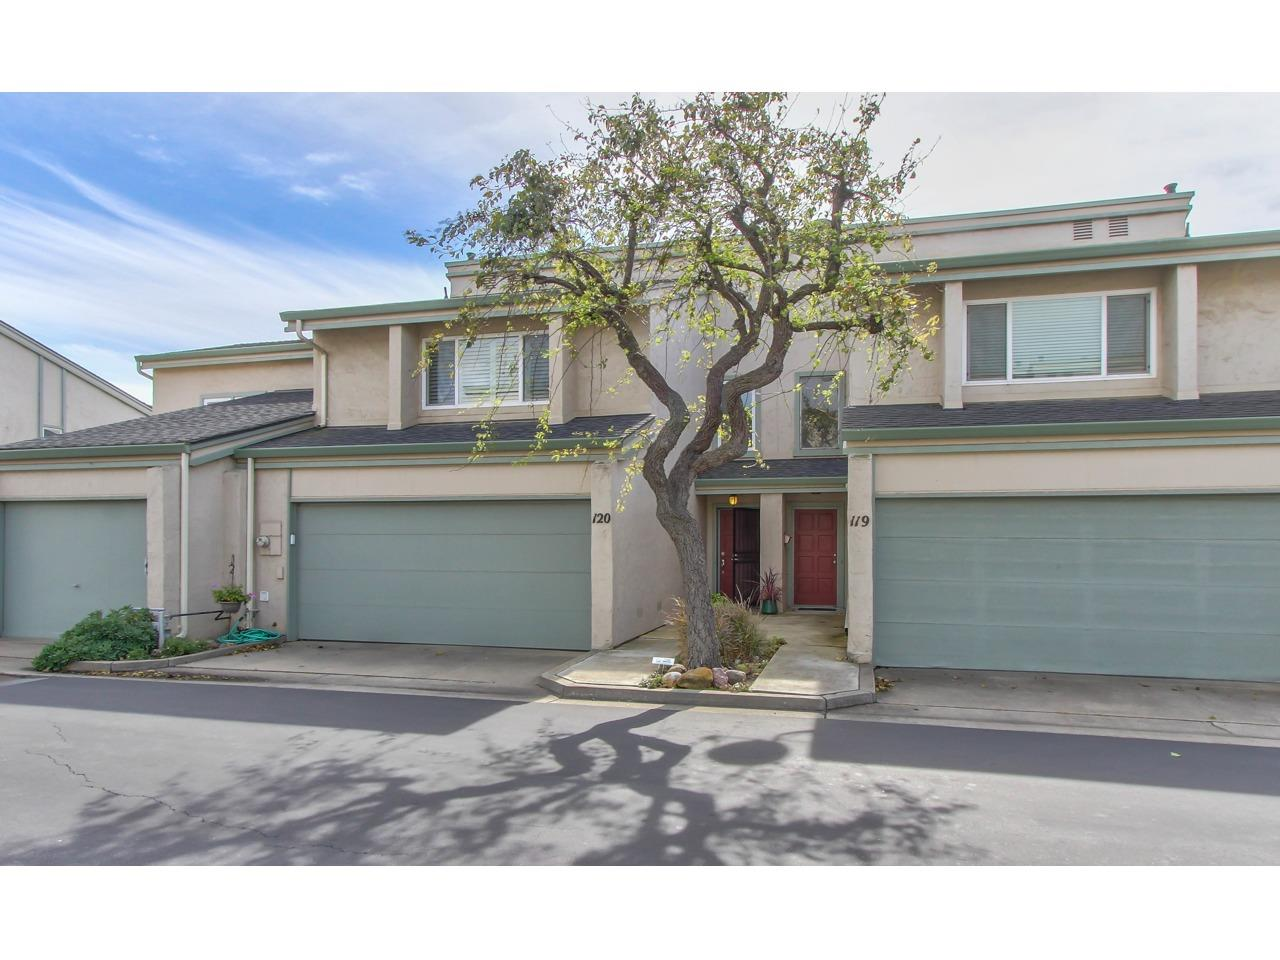 Detail Gallery Image 1 of 24 For 1310 Primavera St #120, Salinas, CA, 93901 - 3 Beds | 1/1 Baths